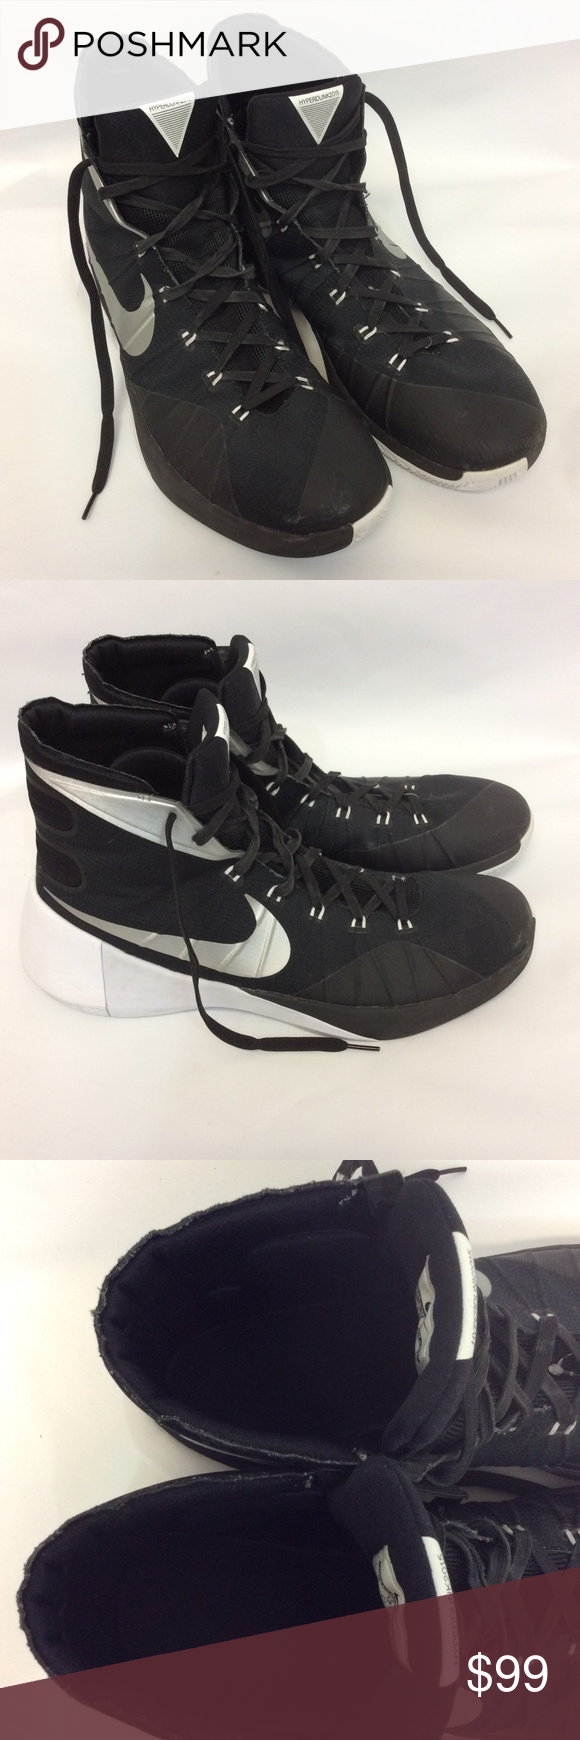 d8a4a6166fc Black Nike Hyperdunk Shoes